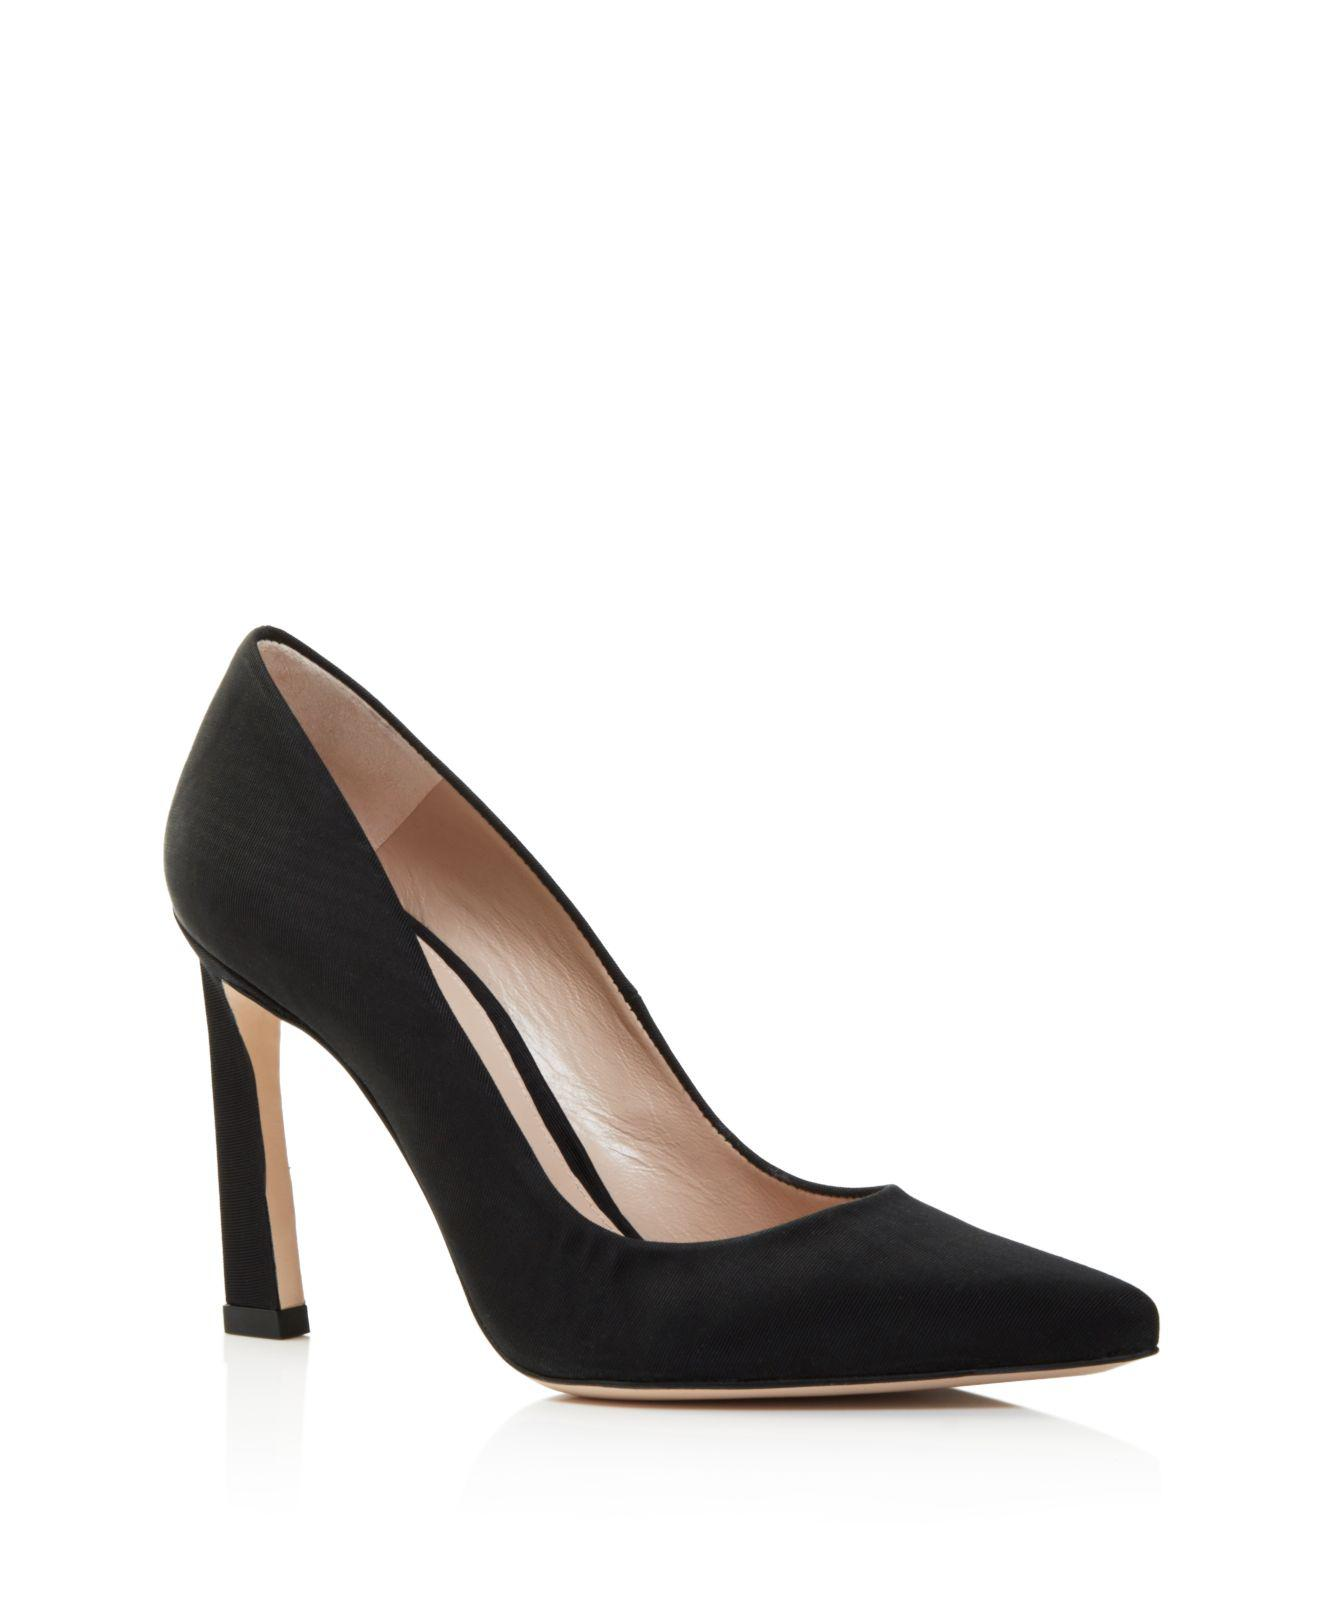 Stuart Weitzman Women's Chicster Metallic Lame High-Heel Pumps byBvSYm